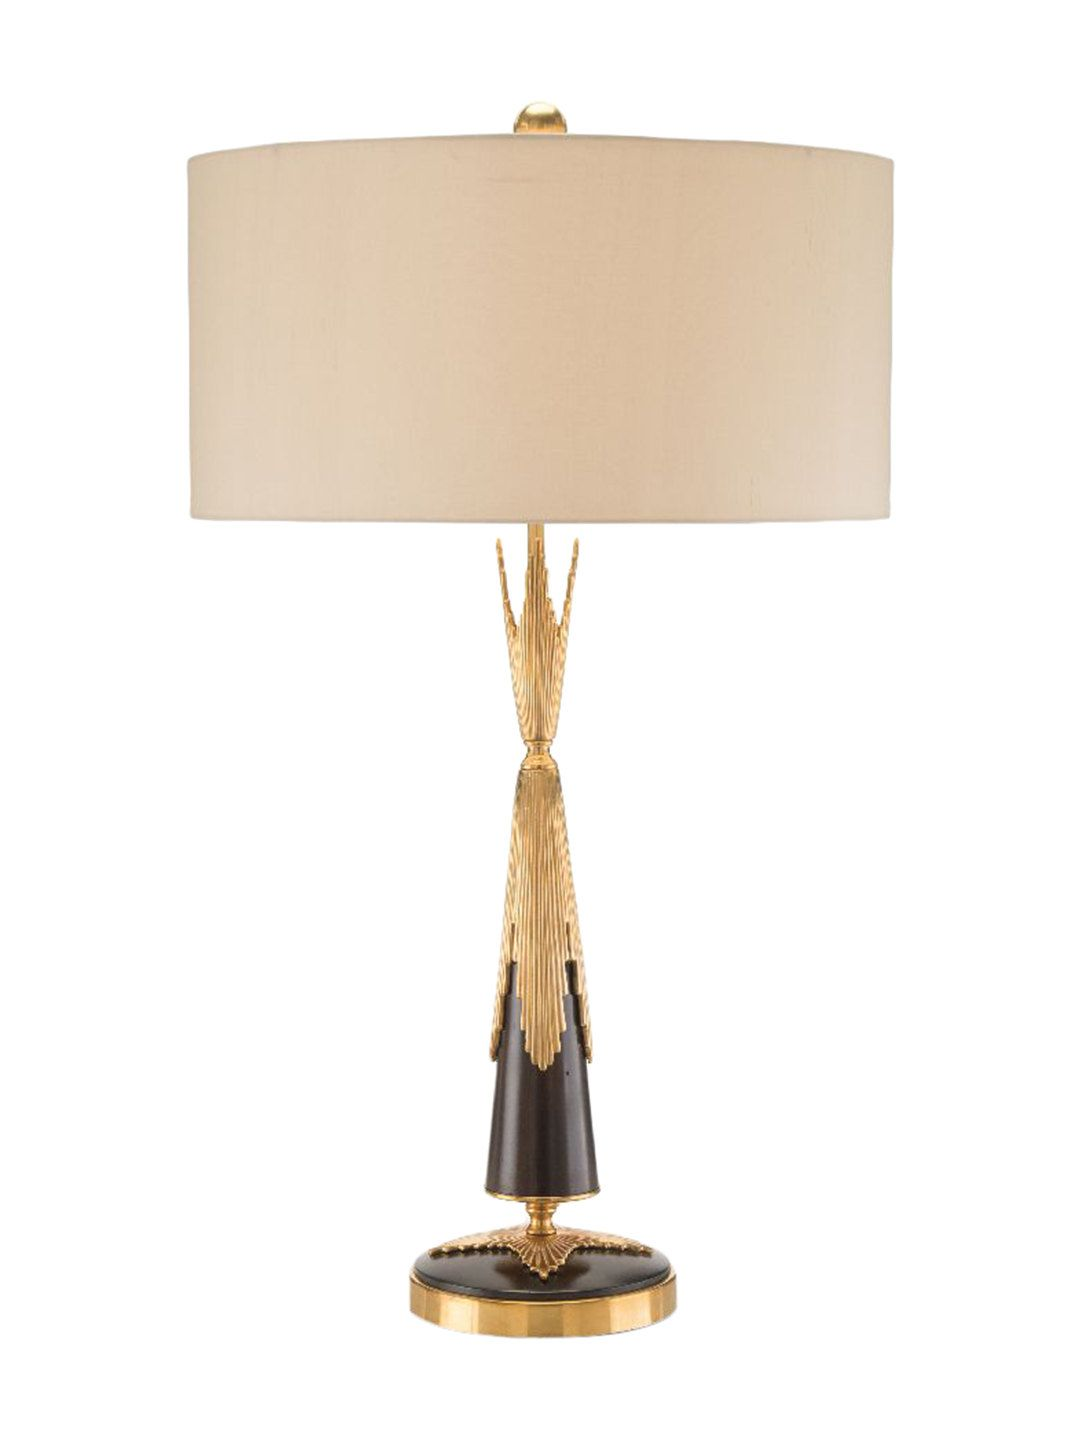 Deco sunburst table lamp by john richard at gilt new digs deco sunburst table lamp by john richard at gilt geotapseo Image collections